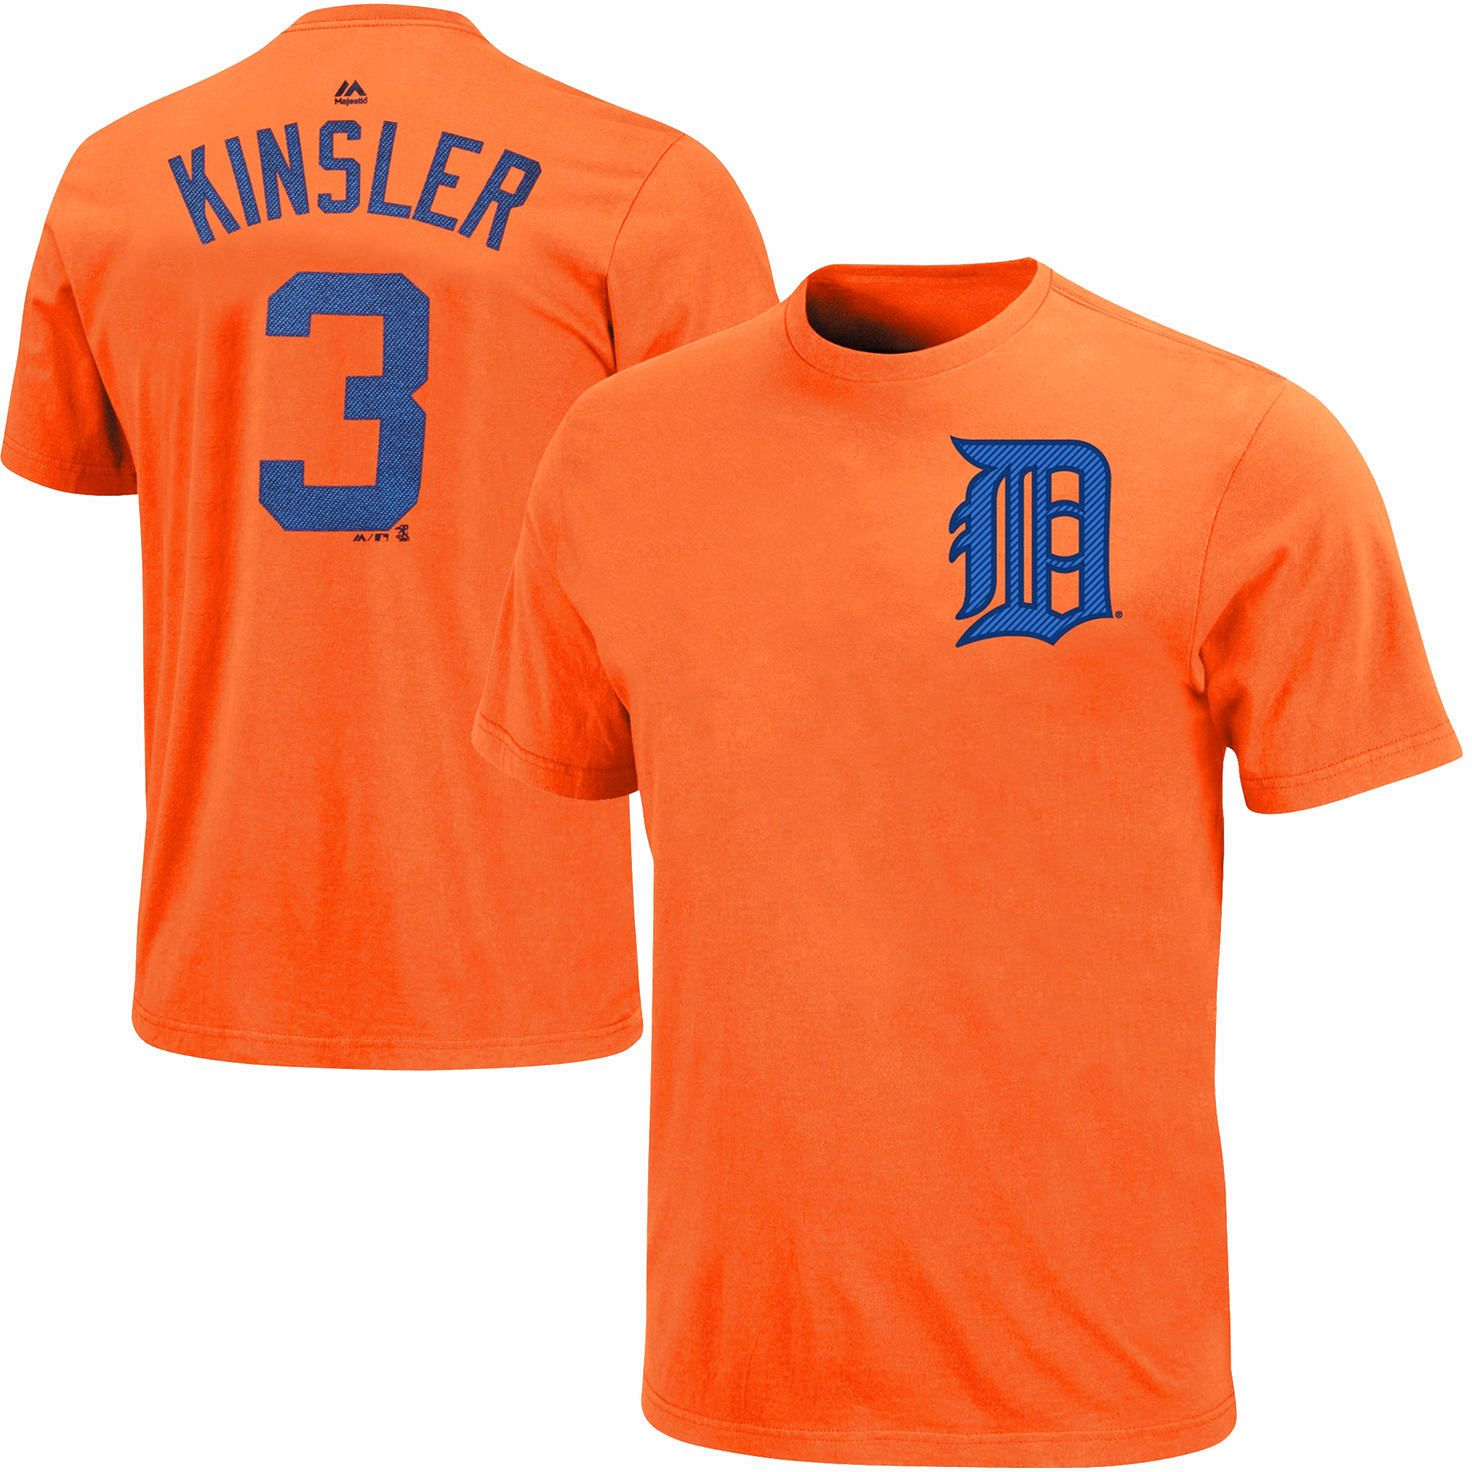 Ian Kinsler Detroit Tigers Majestic Official Name and Number T-Shirt - Orange - $27.99